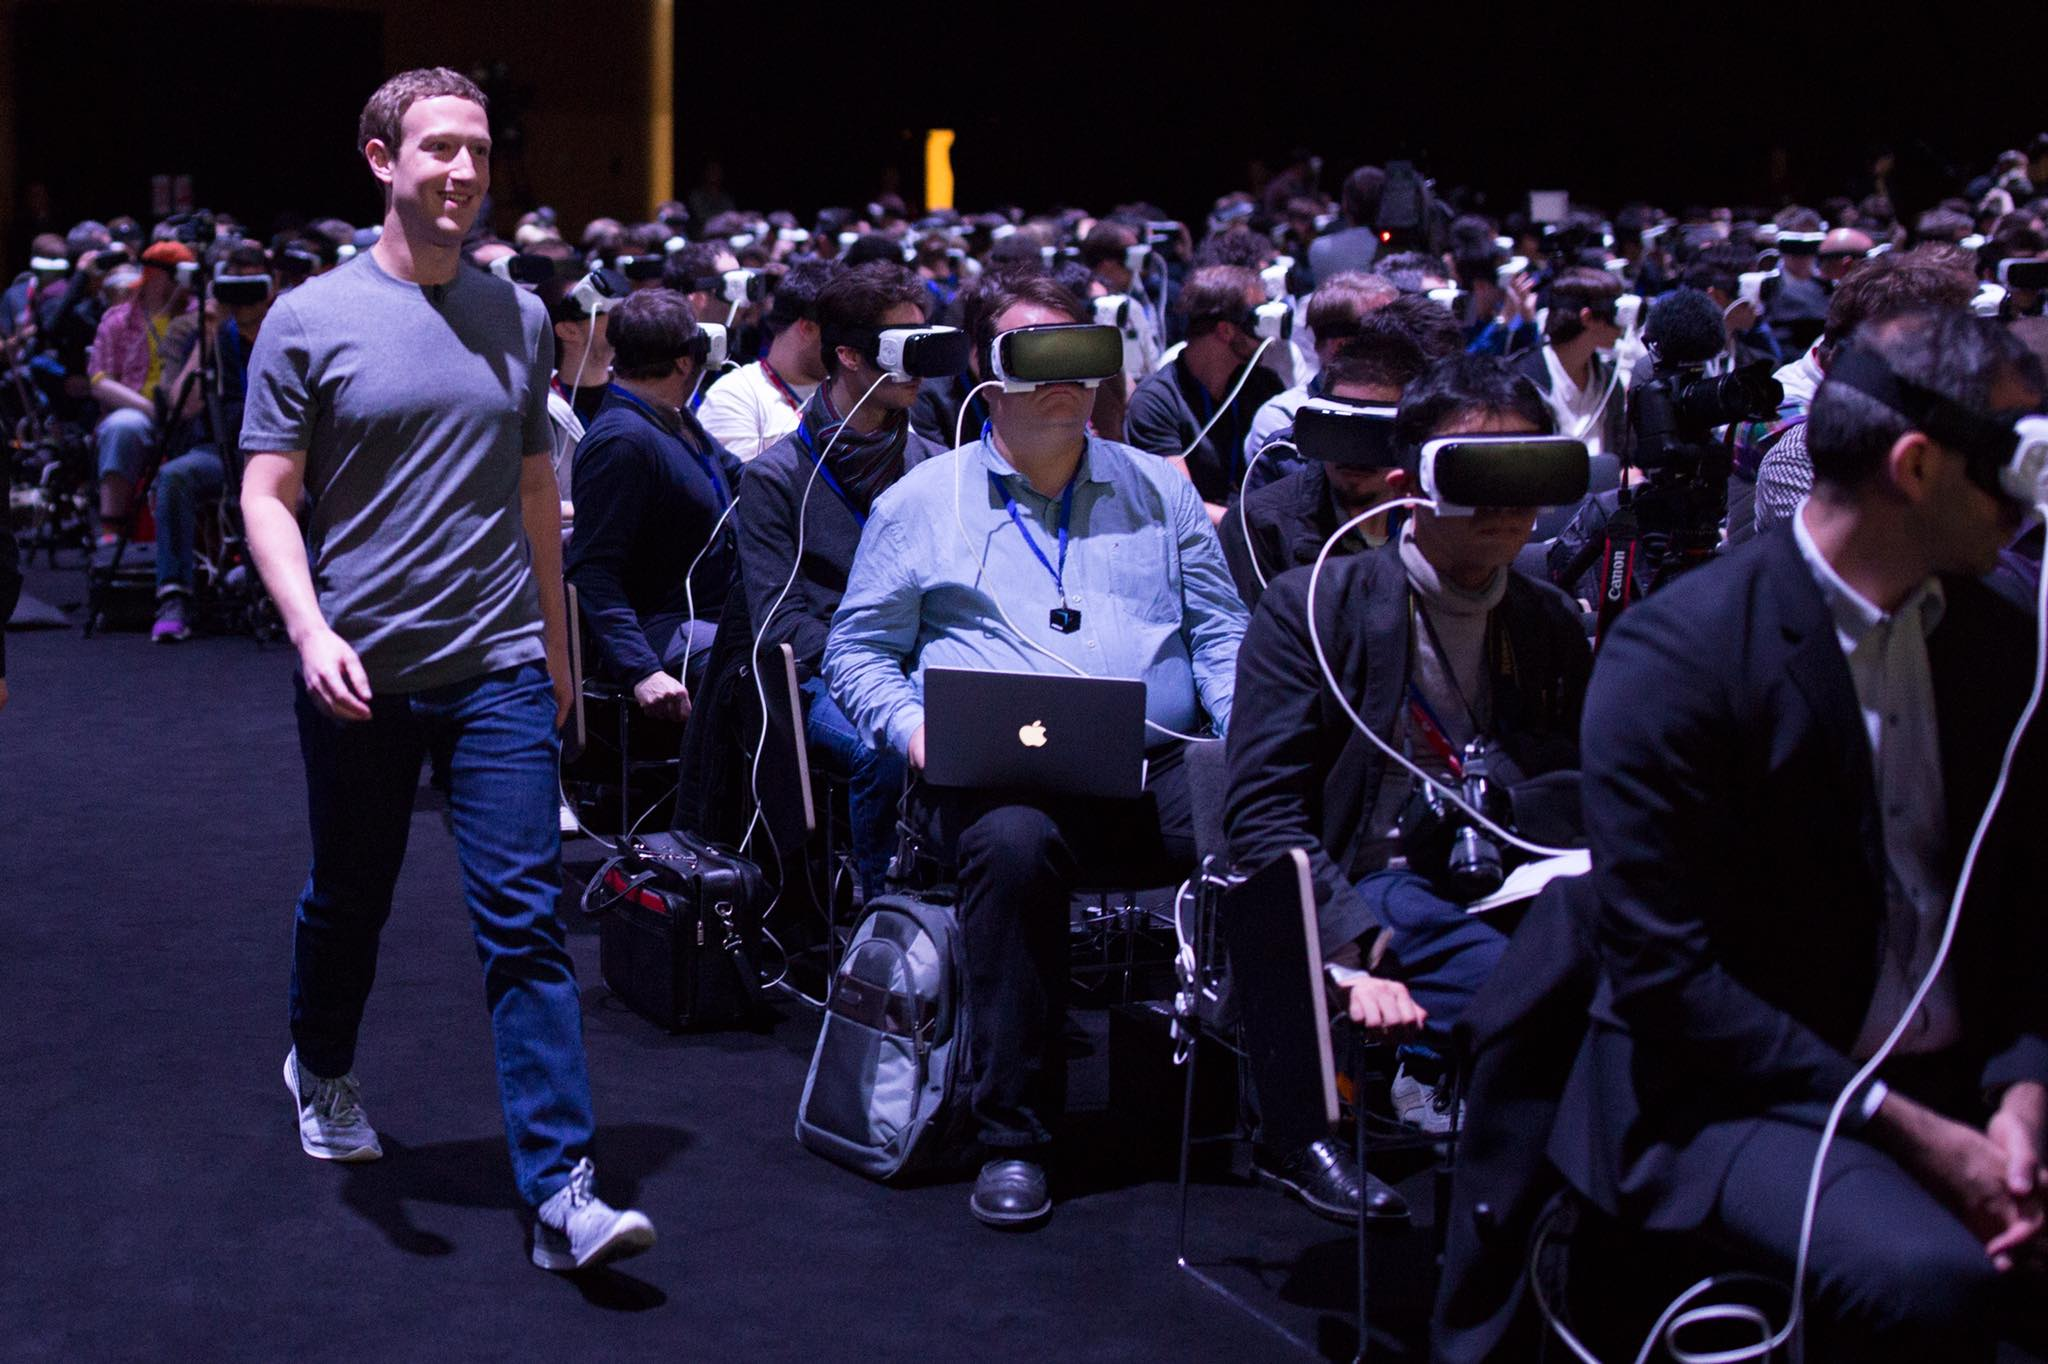 Mark-Zuckerberg-samsung-gear-vr.jpg